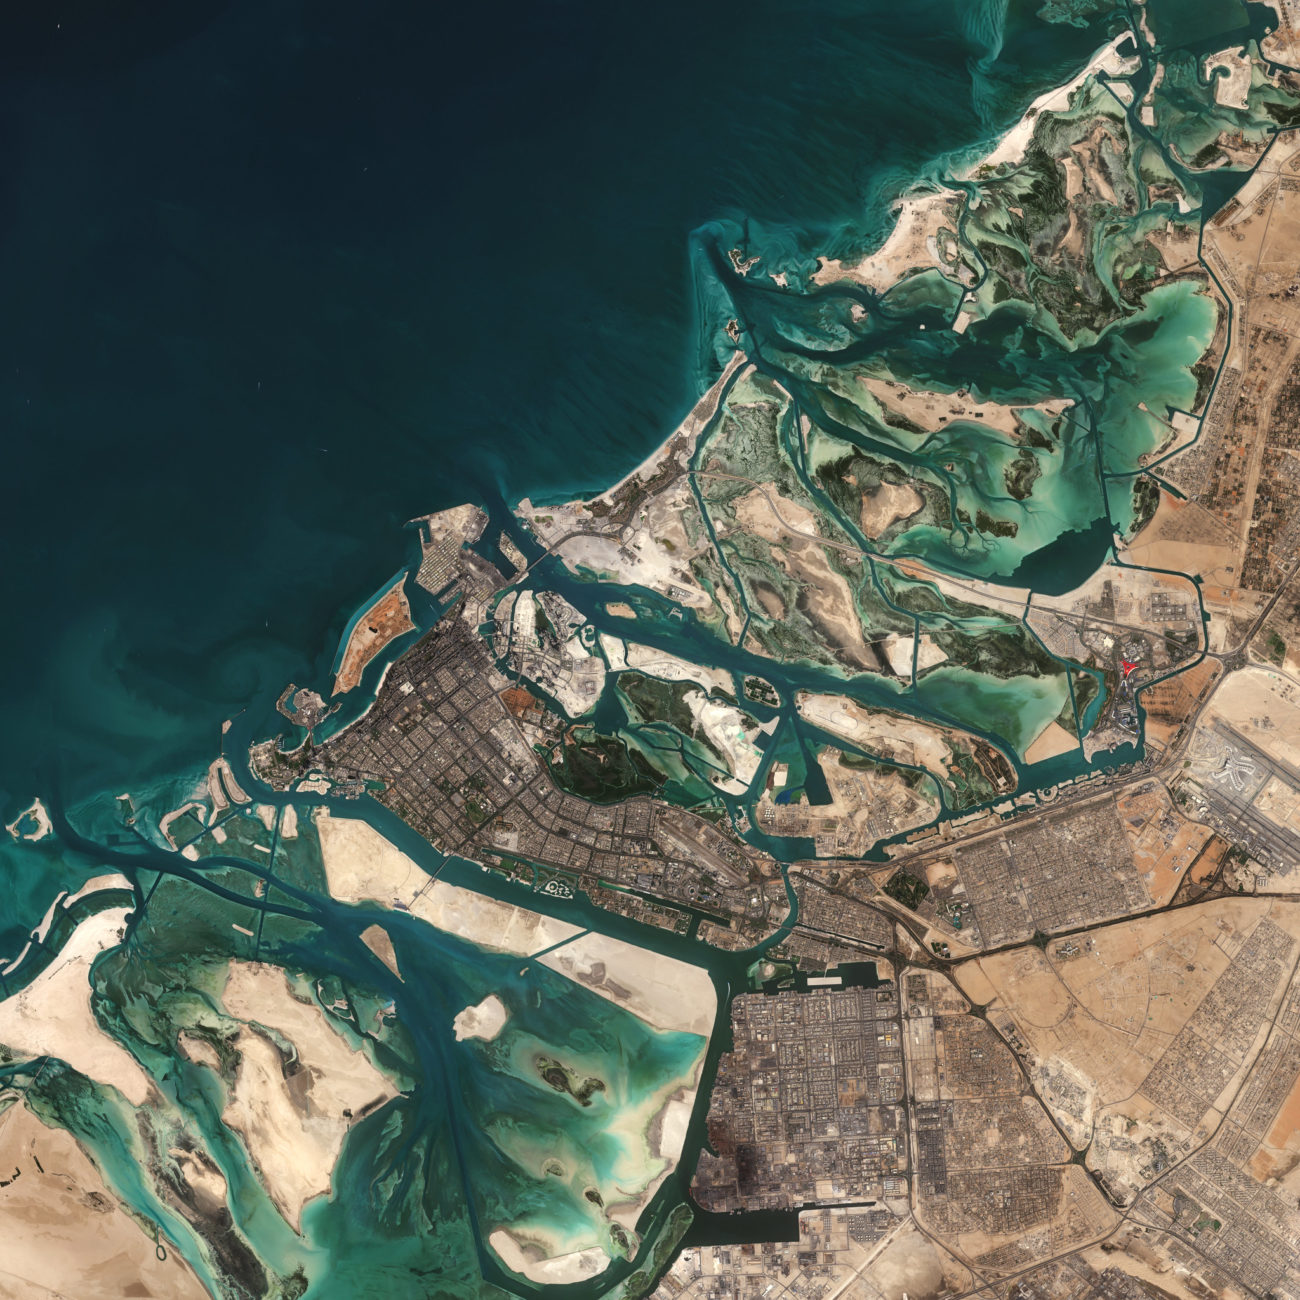 """Abu Dhabi"" by europeanspaceagency is licensed under CC BY-SA 2.0"